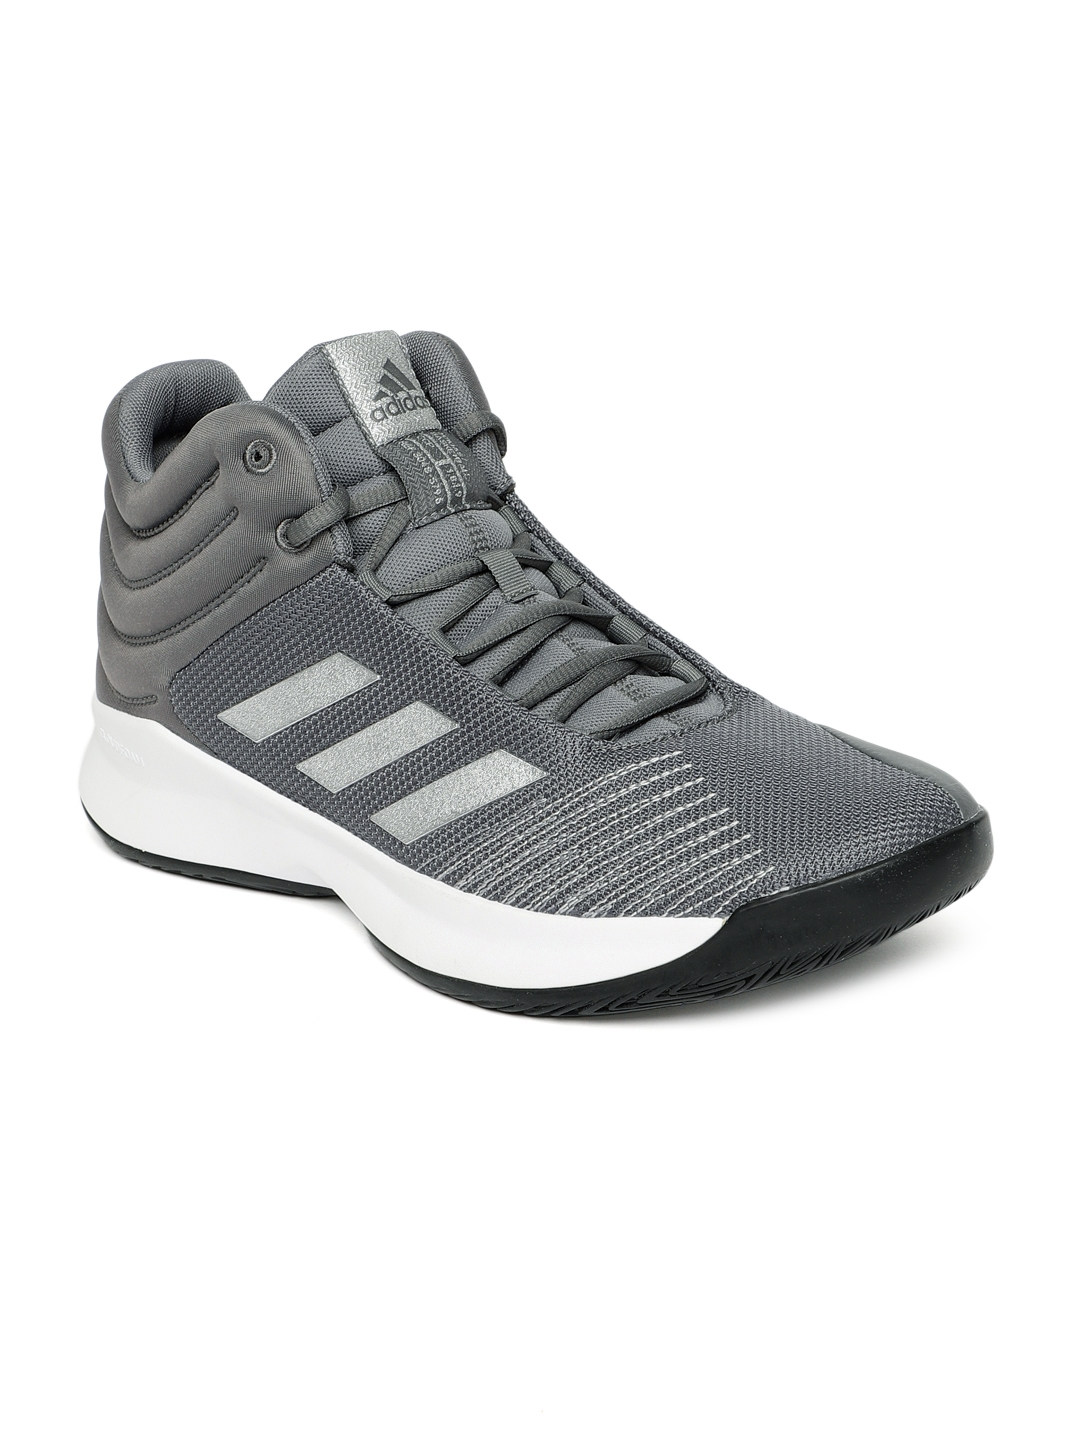 4fd955896bd7 Buy ADIDAS Men Grey Solid Pro Spark Basketball Shoes - Sports Shoes ...